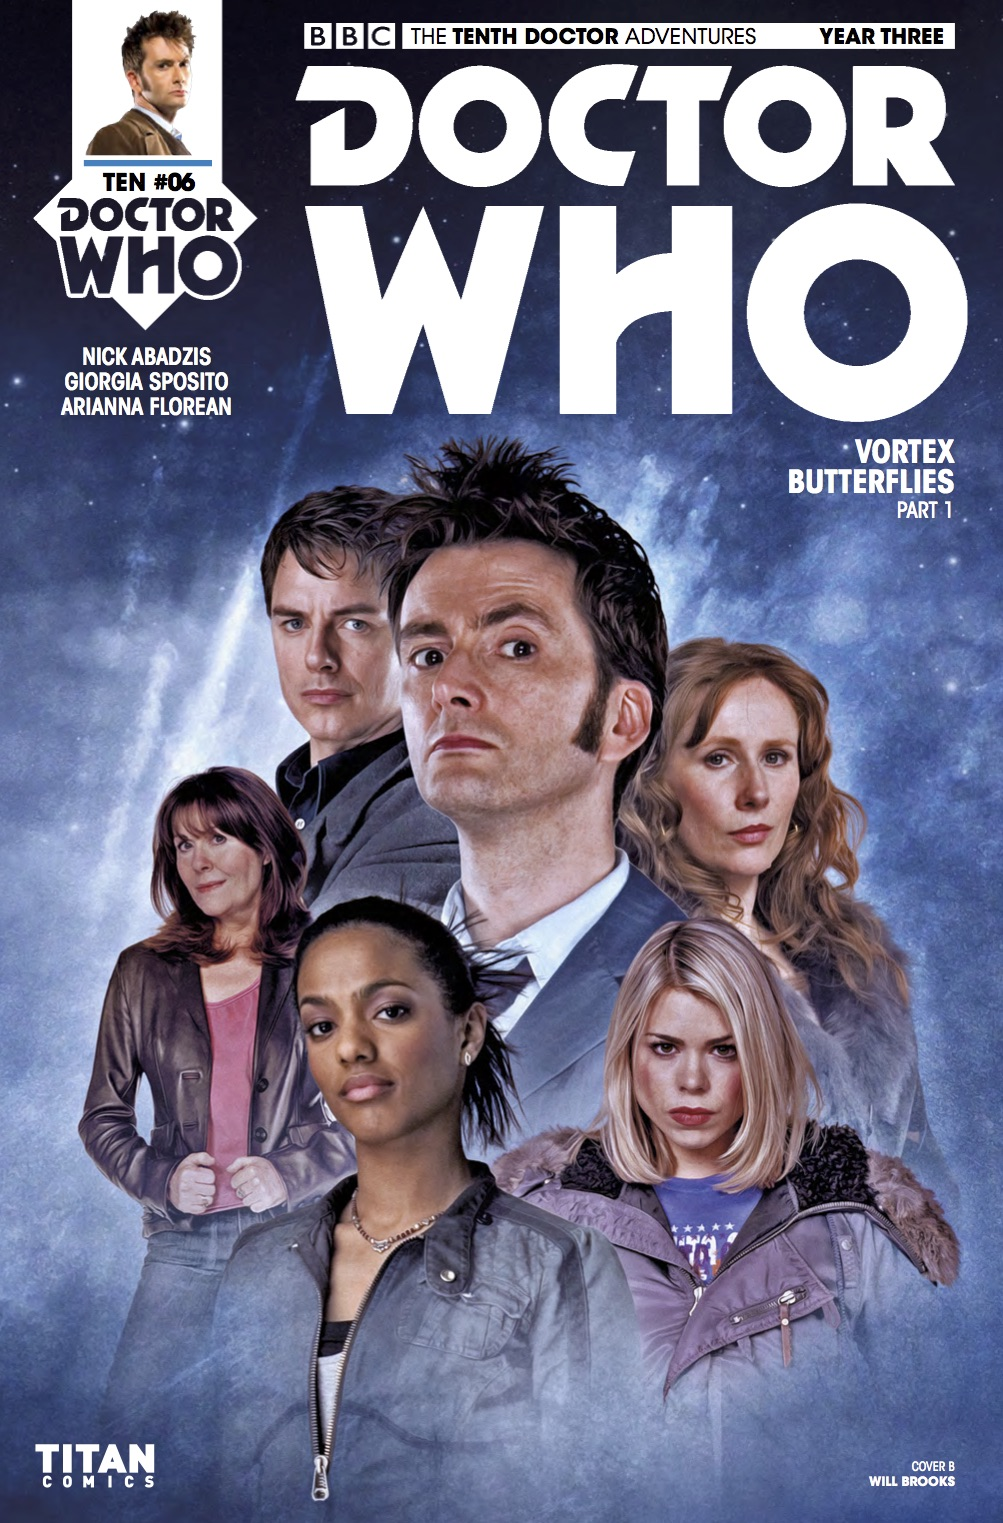 D​octor Who: The Tenth Doctor Year 3 #6​ Cover B (Credit: Titan / Will Brooks)